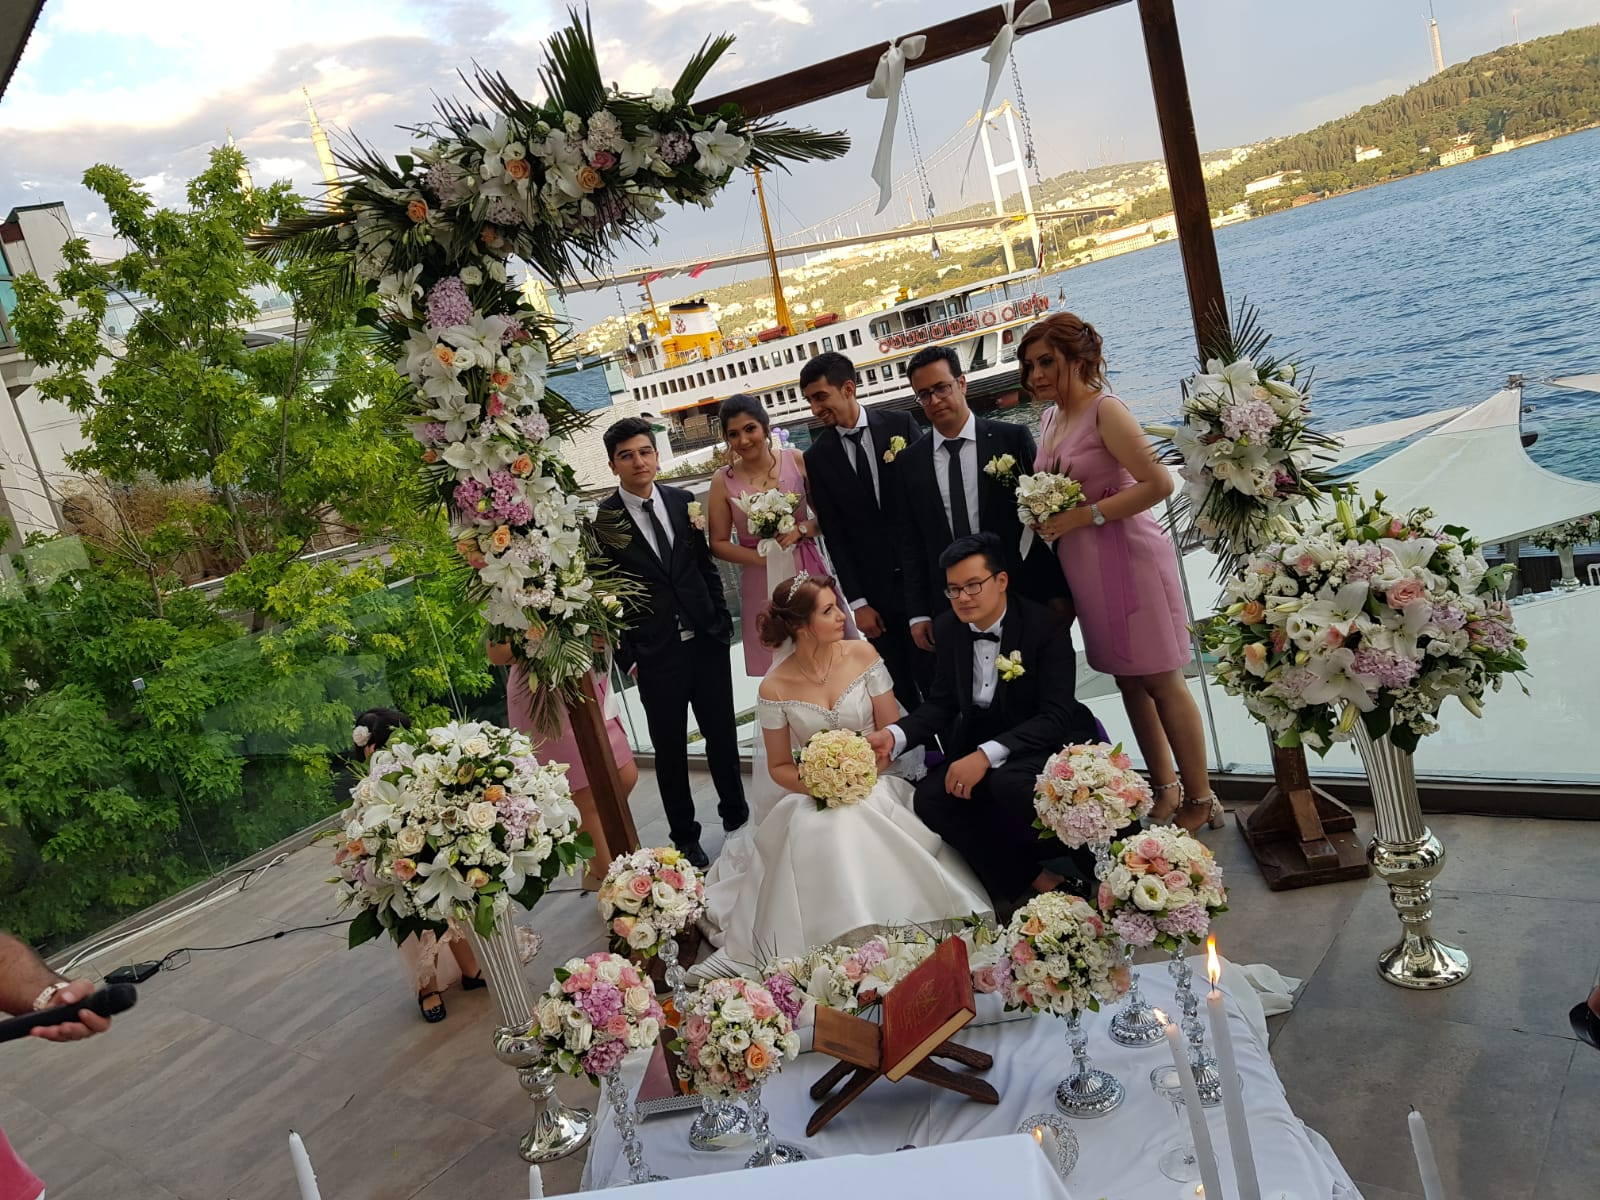 Persian Wedding Planner in Bodrum Turkey for 2020